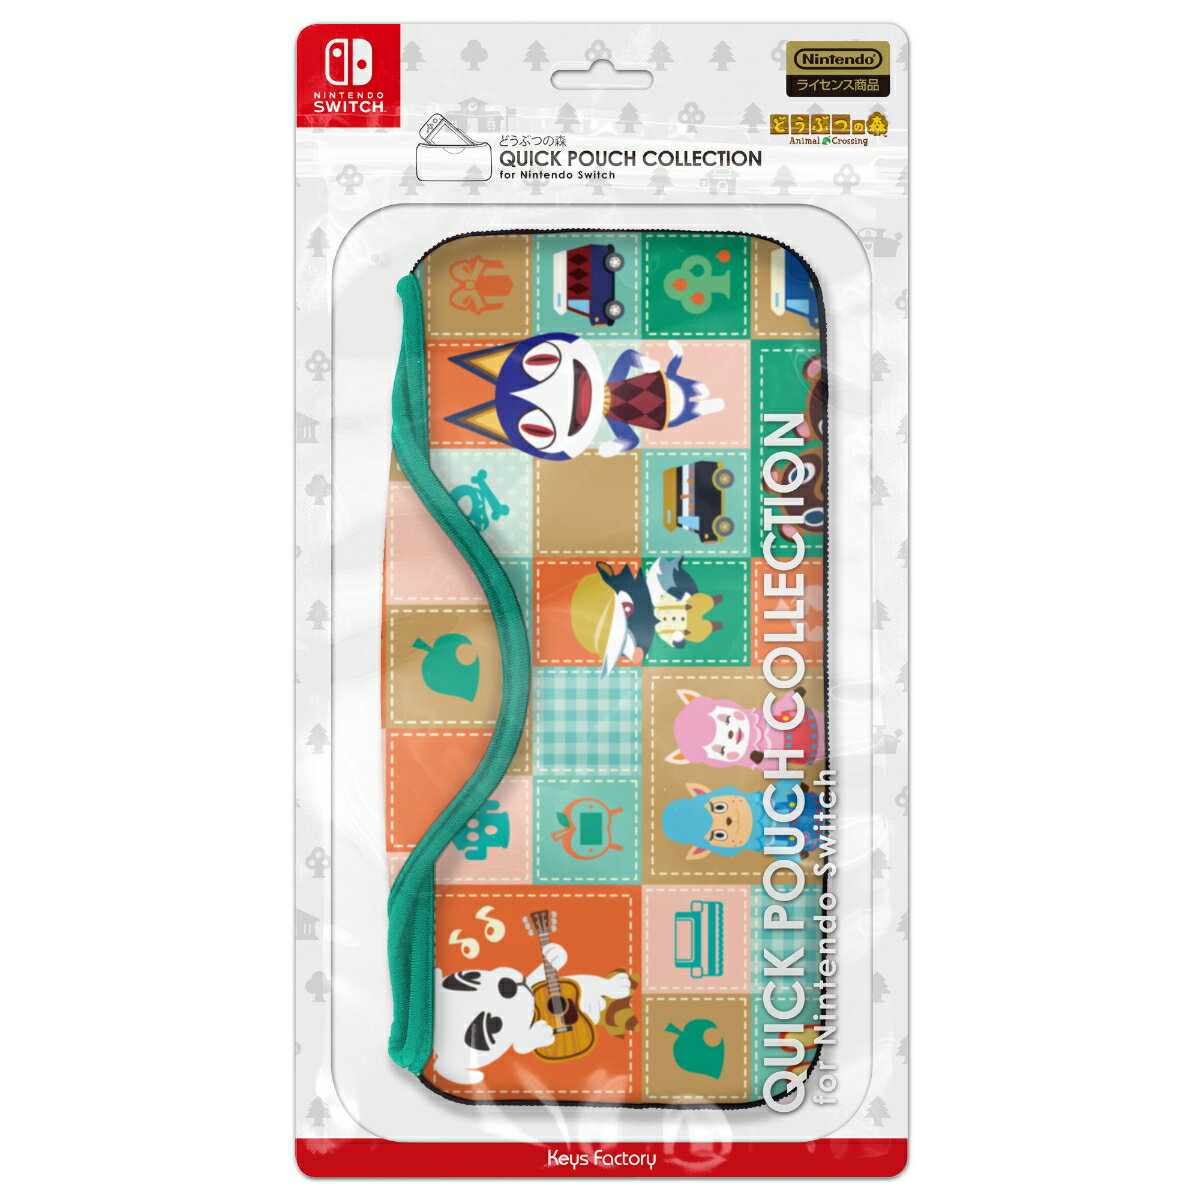 QUICK POUCH COLLECTION for Nintendo Switch どうぶつの森Type-A